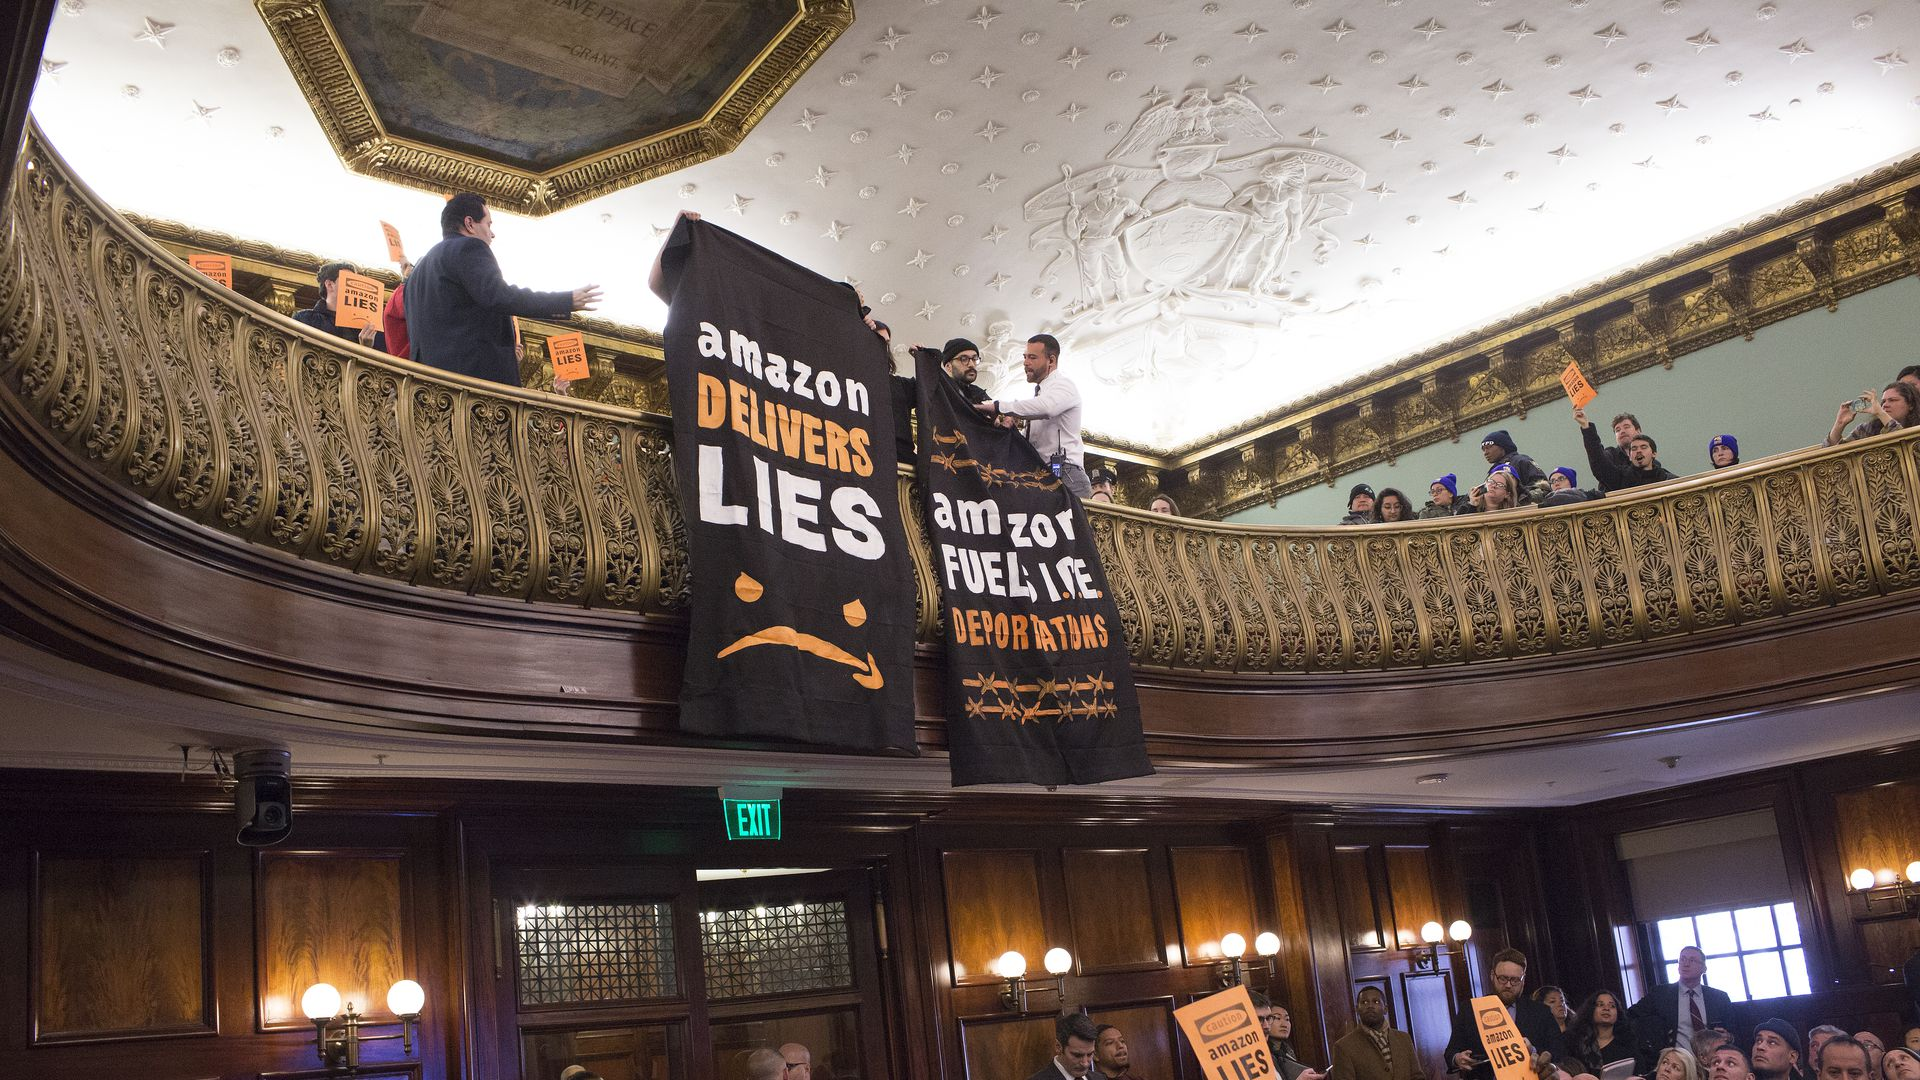 Photo of protestors at NYC council meeting on Amazon's deal to have HQ2 in Long Island City.